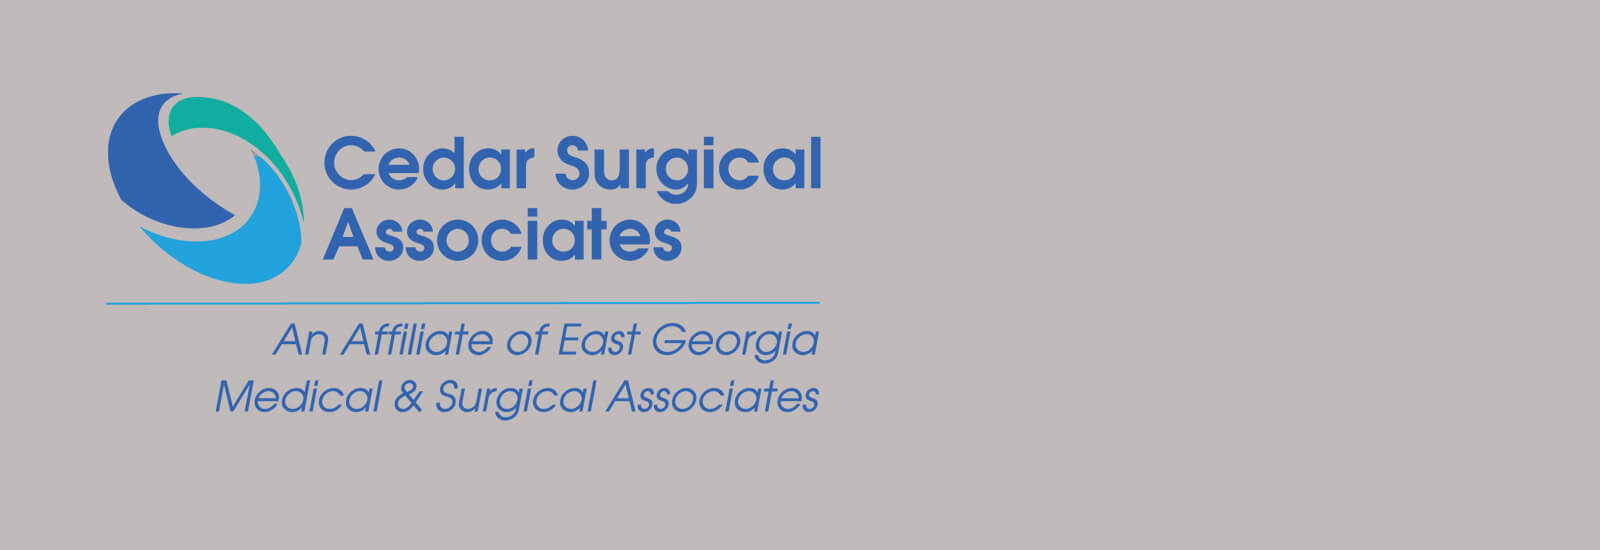 Cedar Surgical Associates Relocation